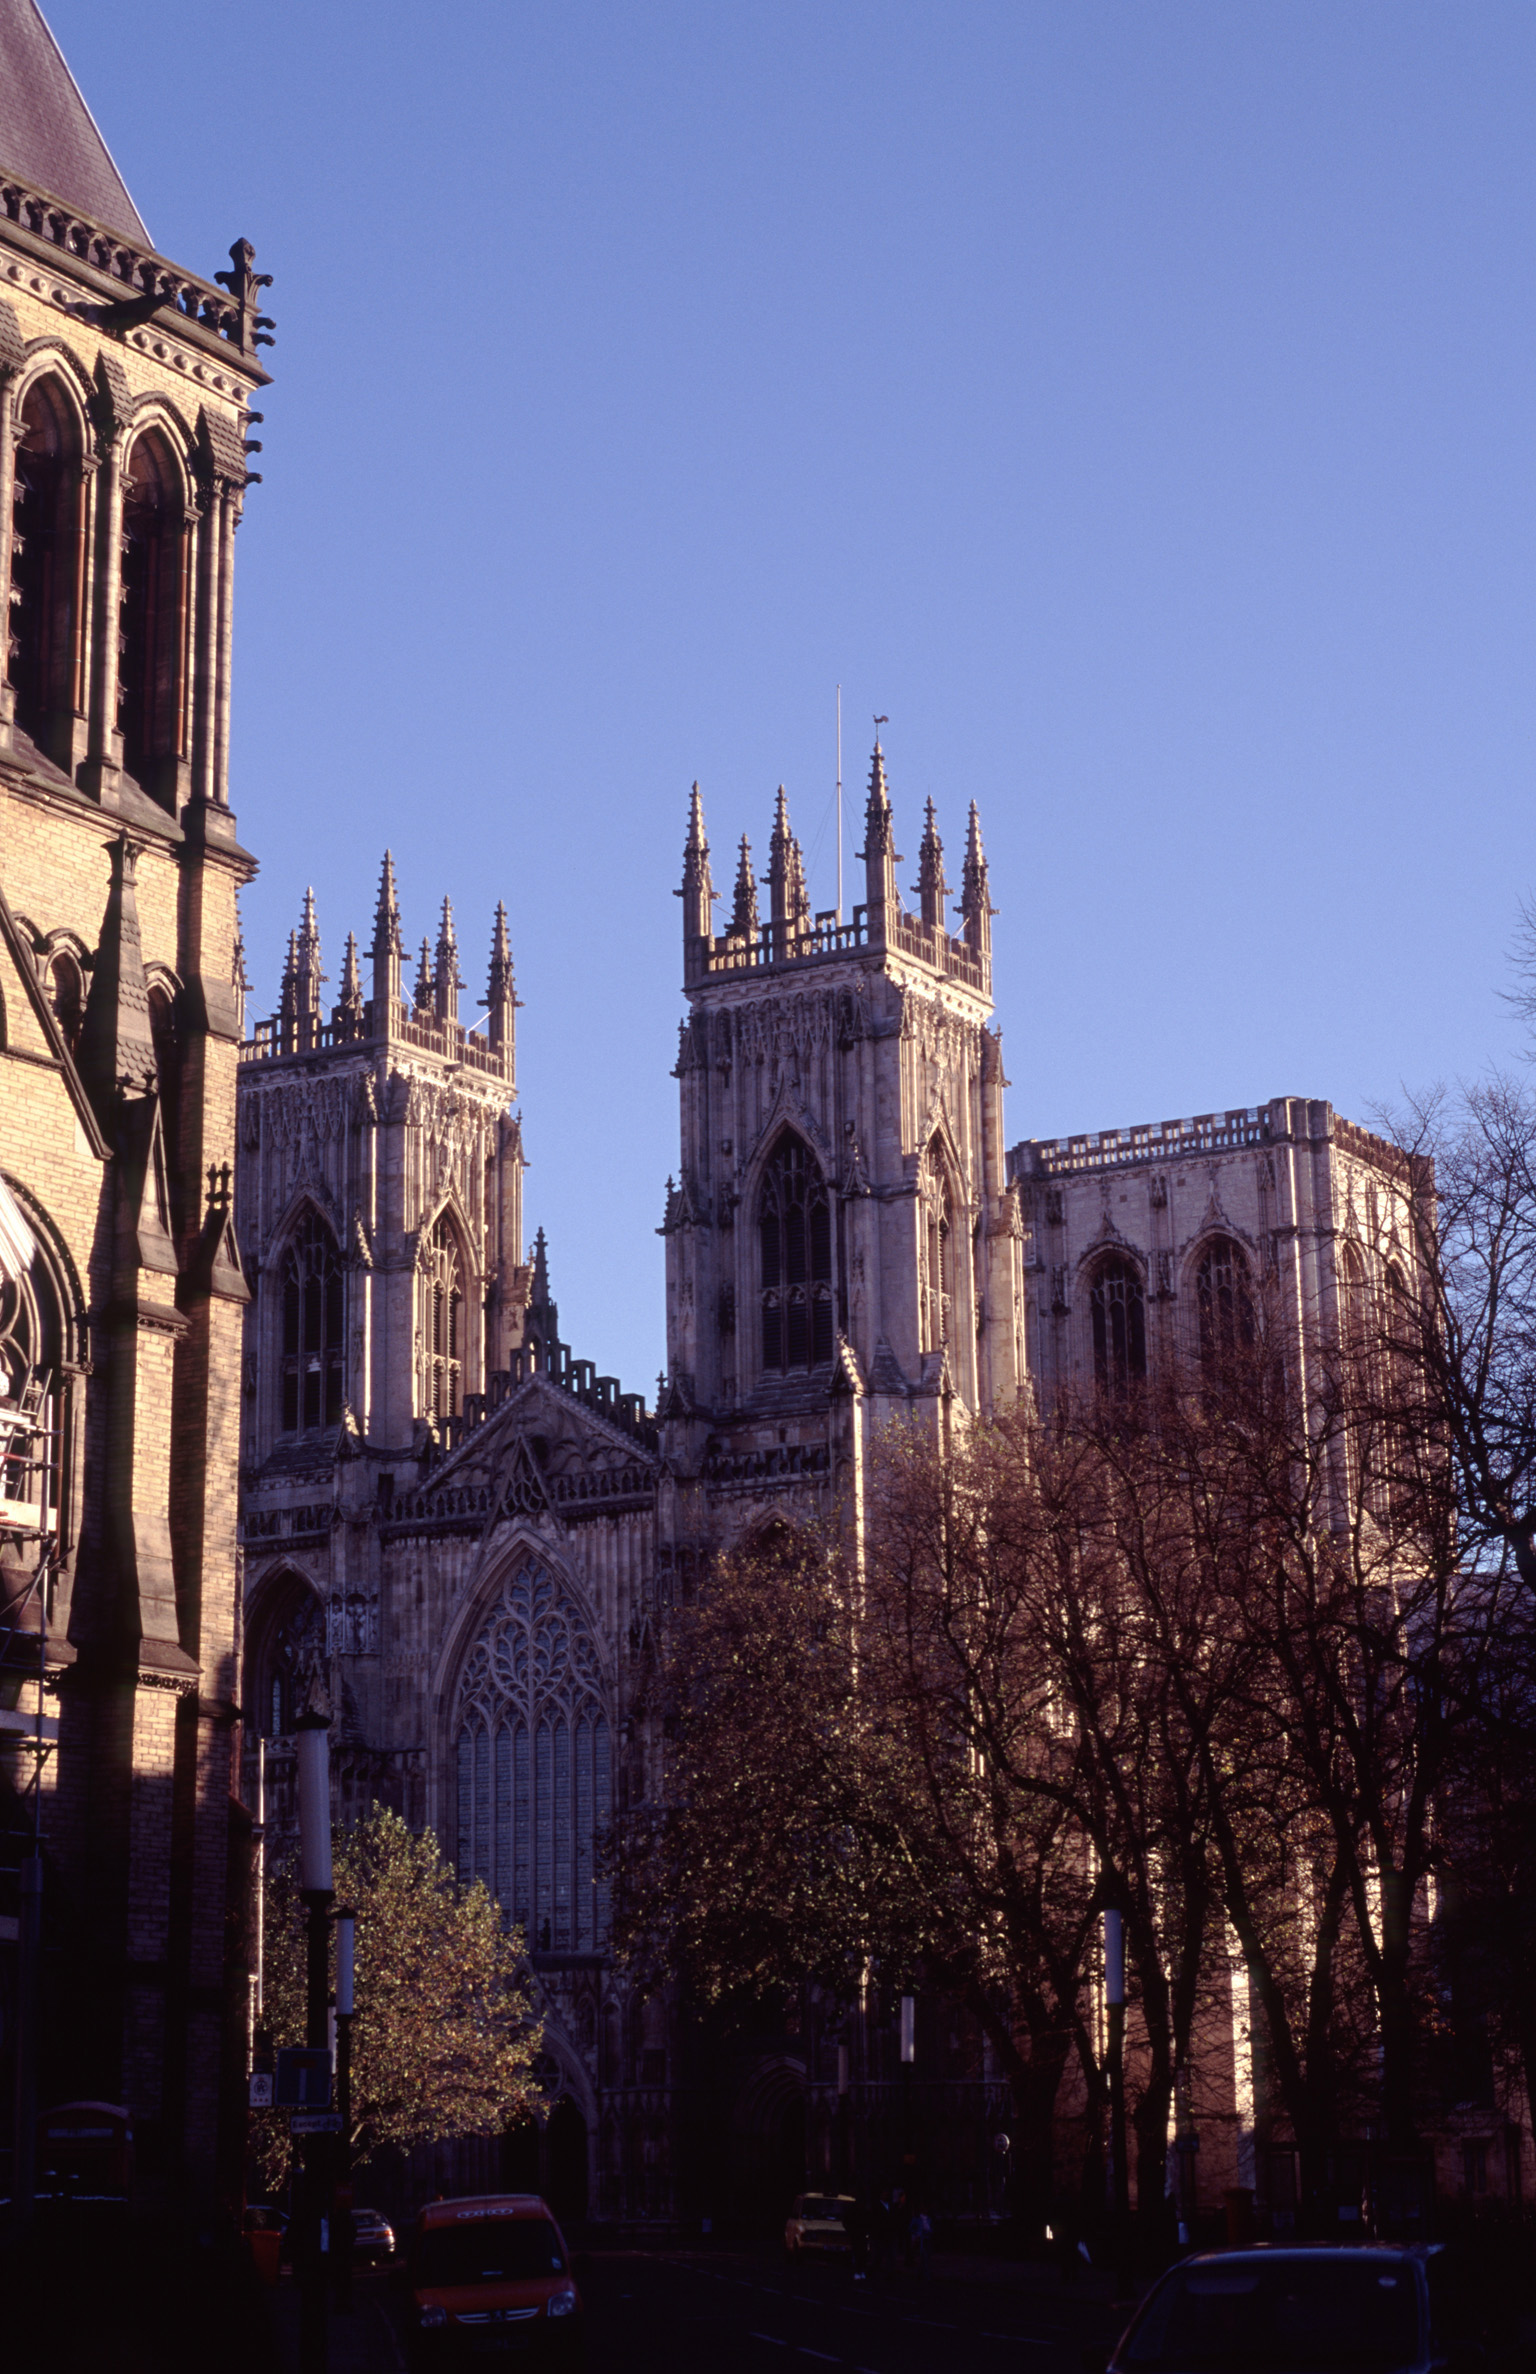 Exterior of Facade of York Minster Cathedral at Dusk, York, England